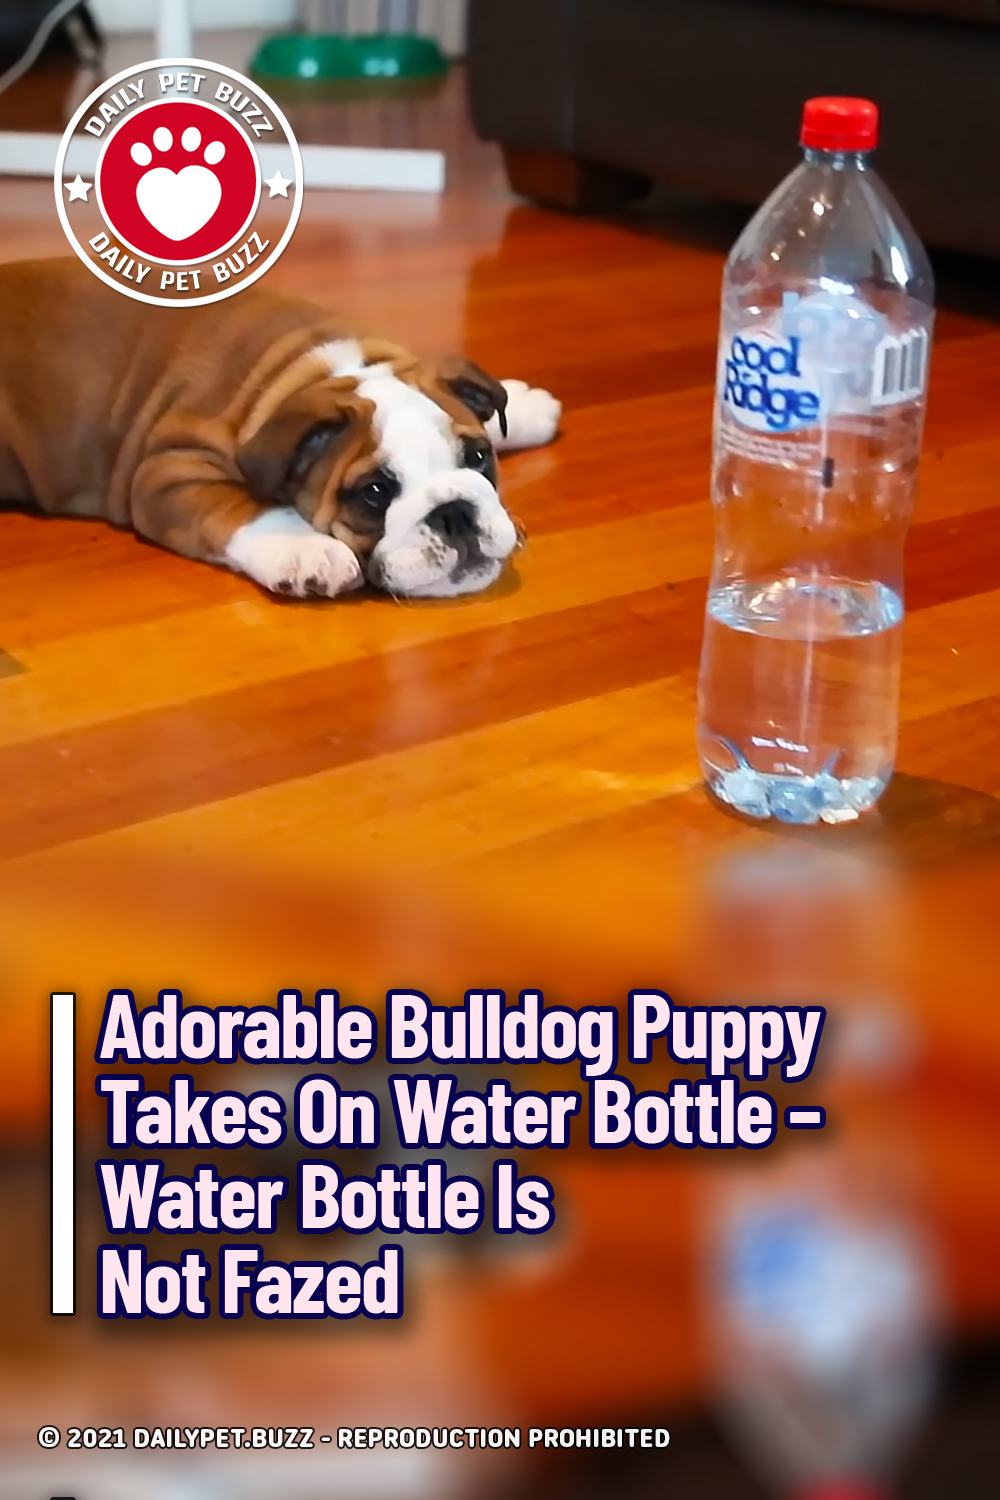 Adorable Bulldog Puppy Takes On Water Bottle – Water Bottle Is Not Fazed